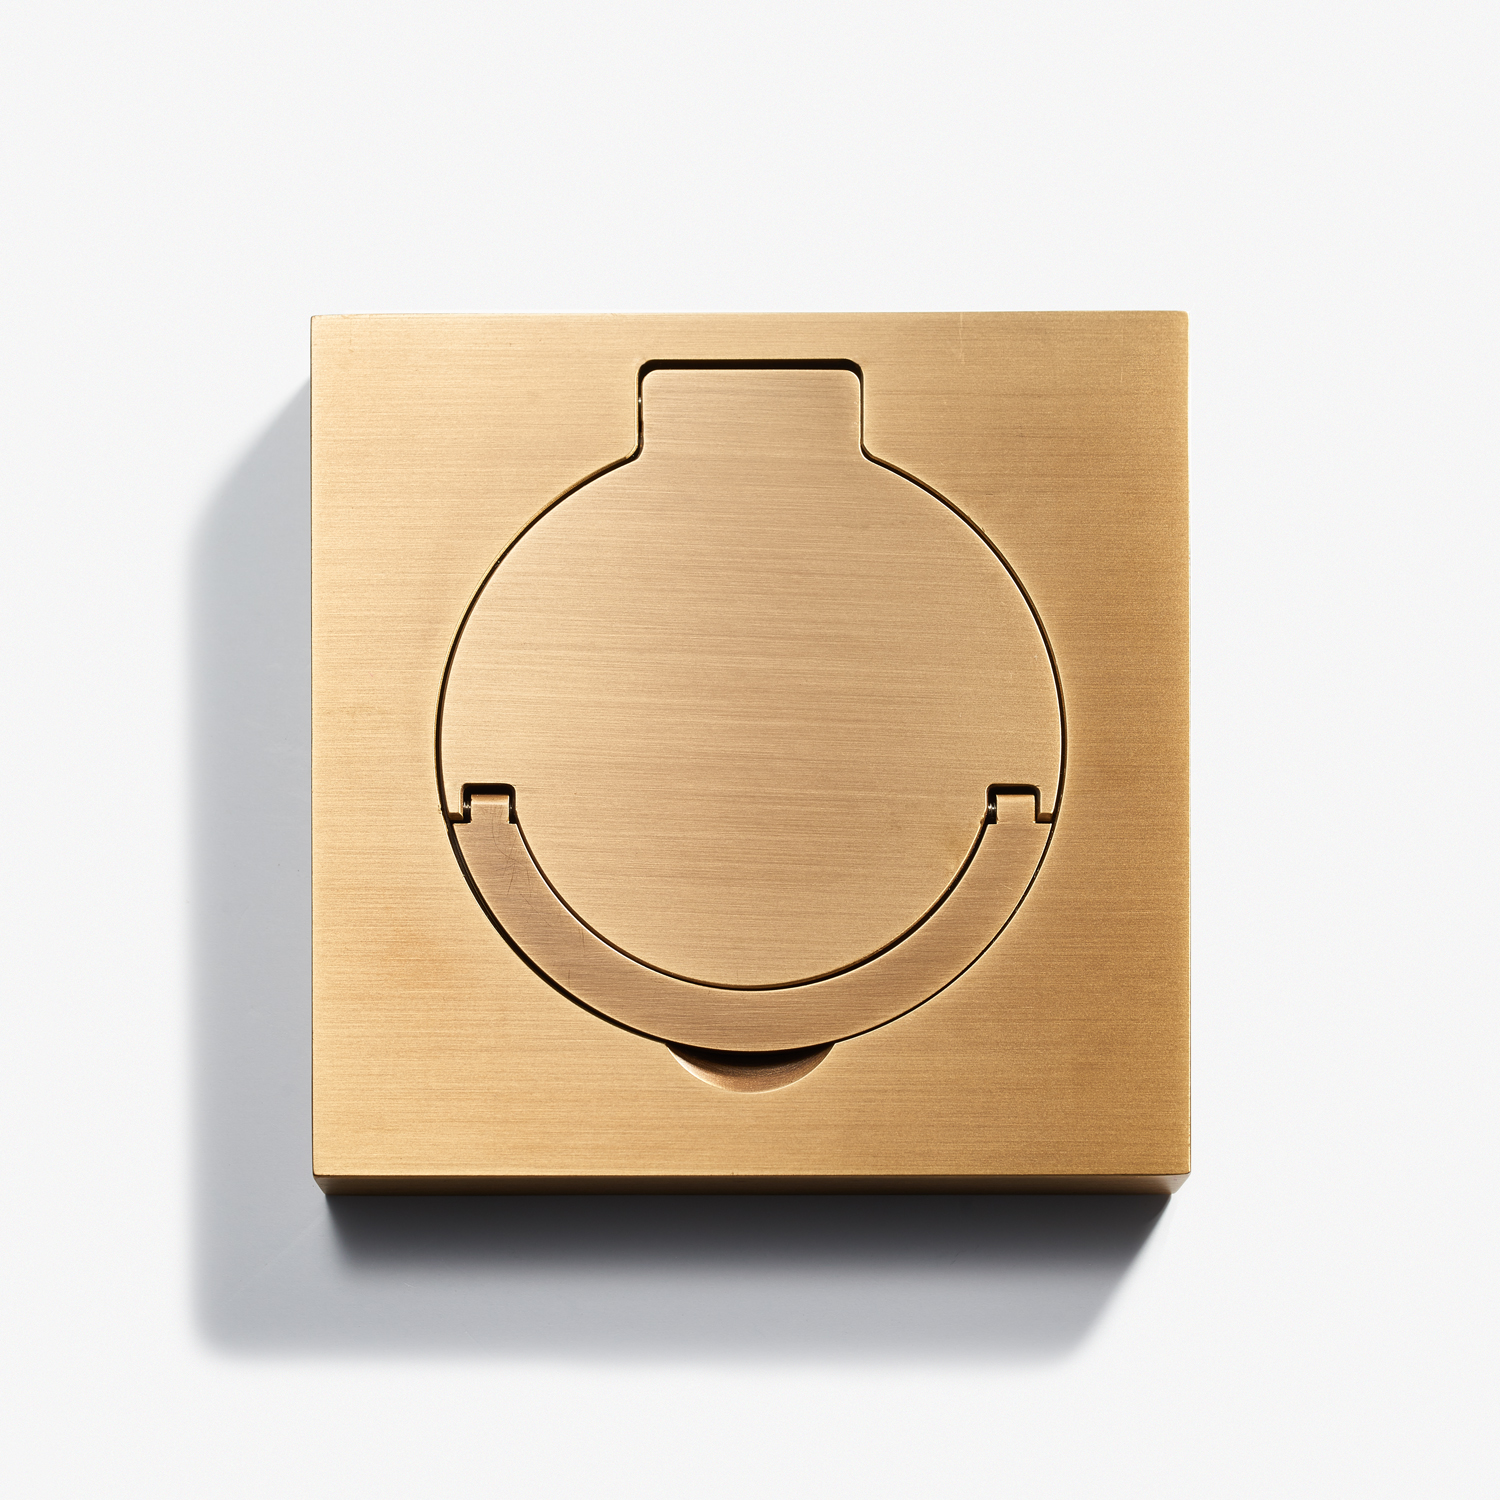 100 x 100 - Square Floor Outlet - Water Resistant - Bronze Médaille Clair.jpg